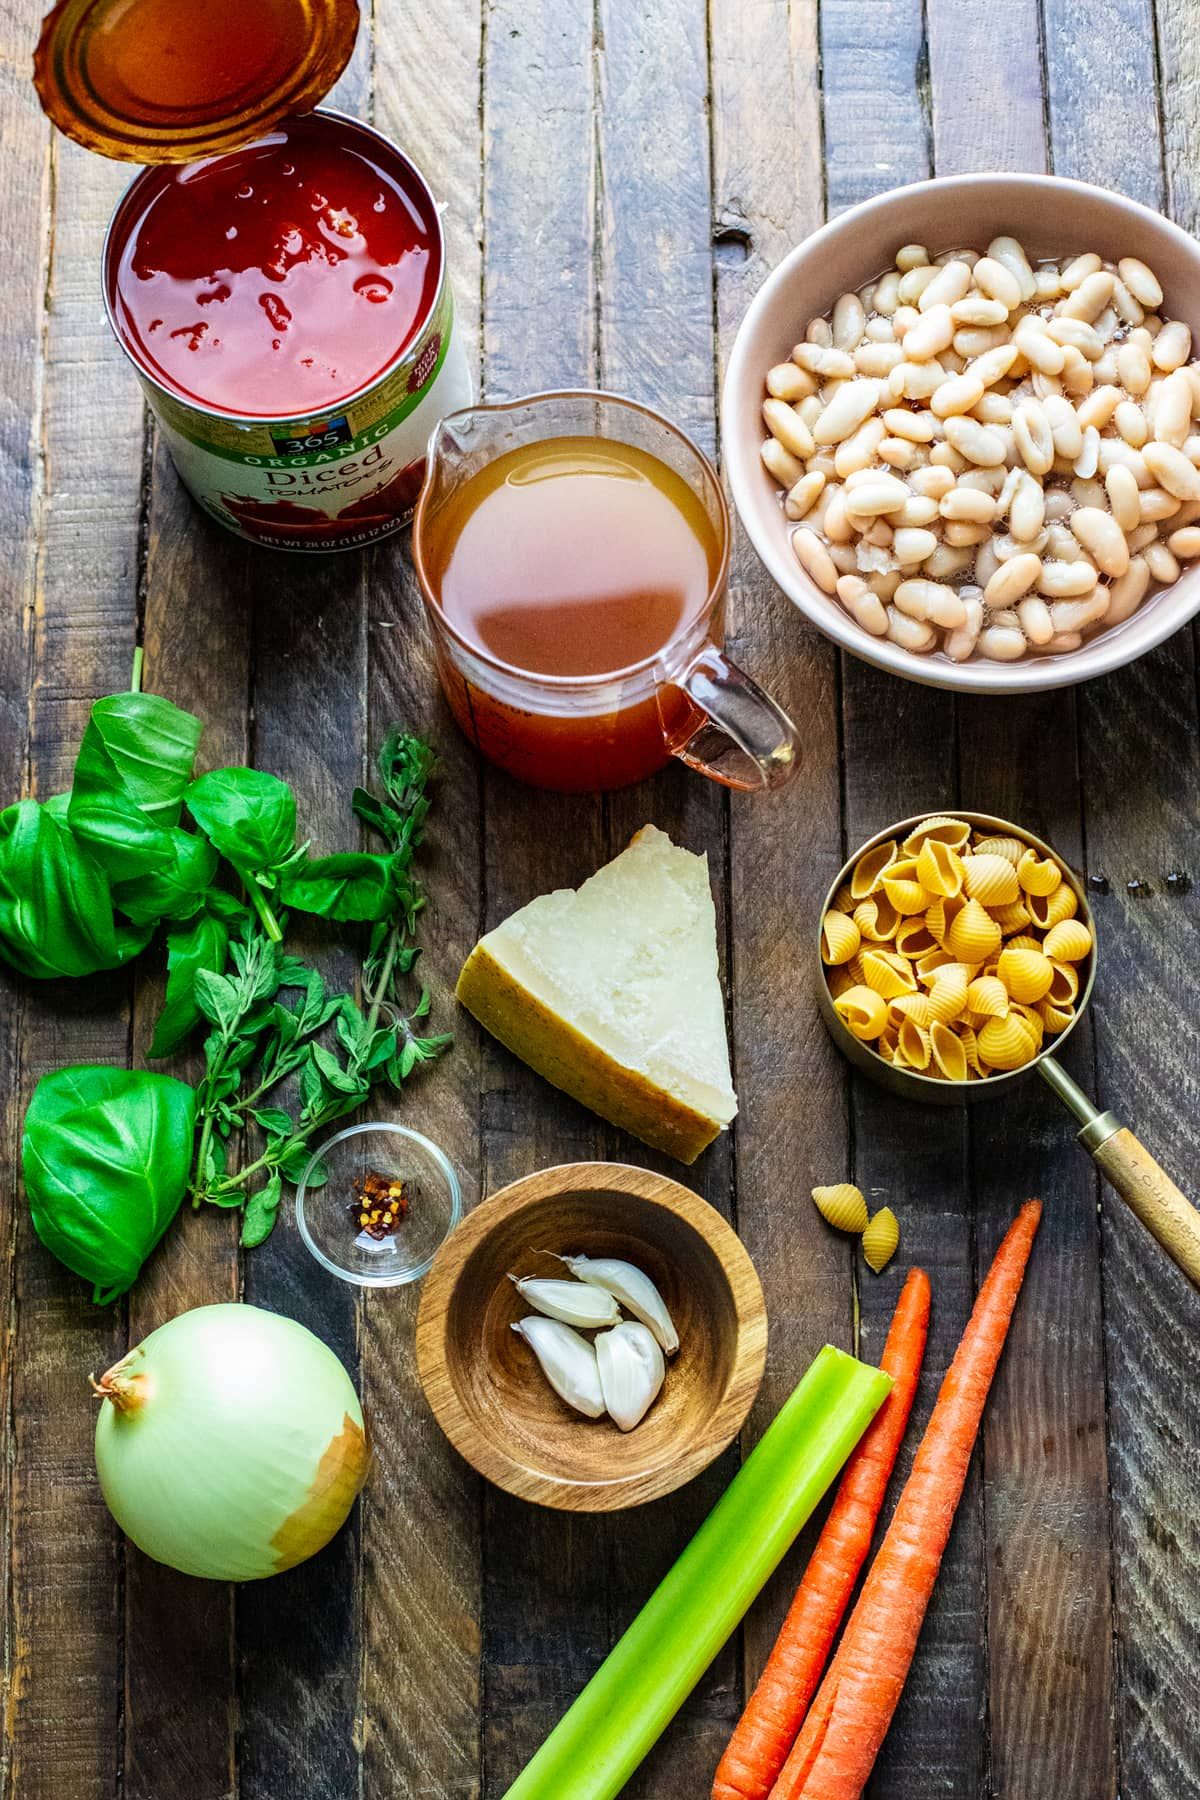 ingredients for pasta fagioli soup arranged on brown wooden board.